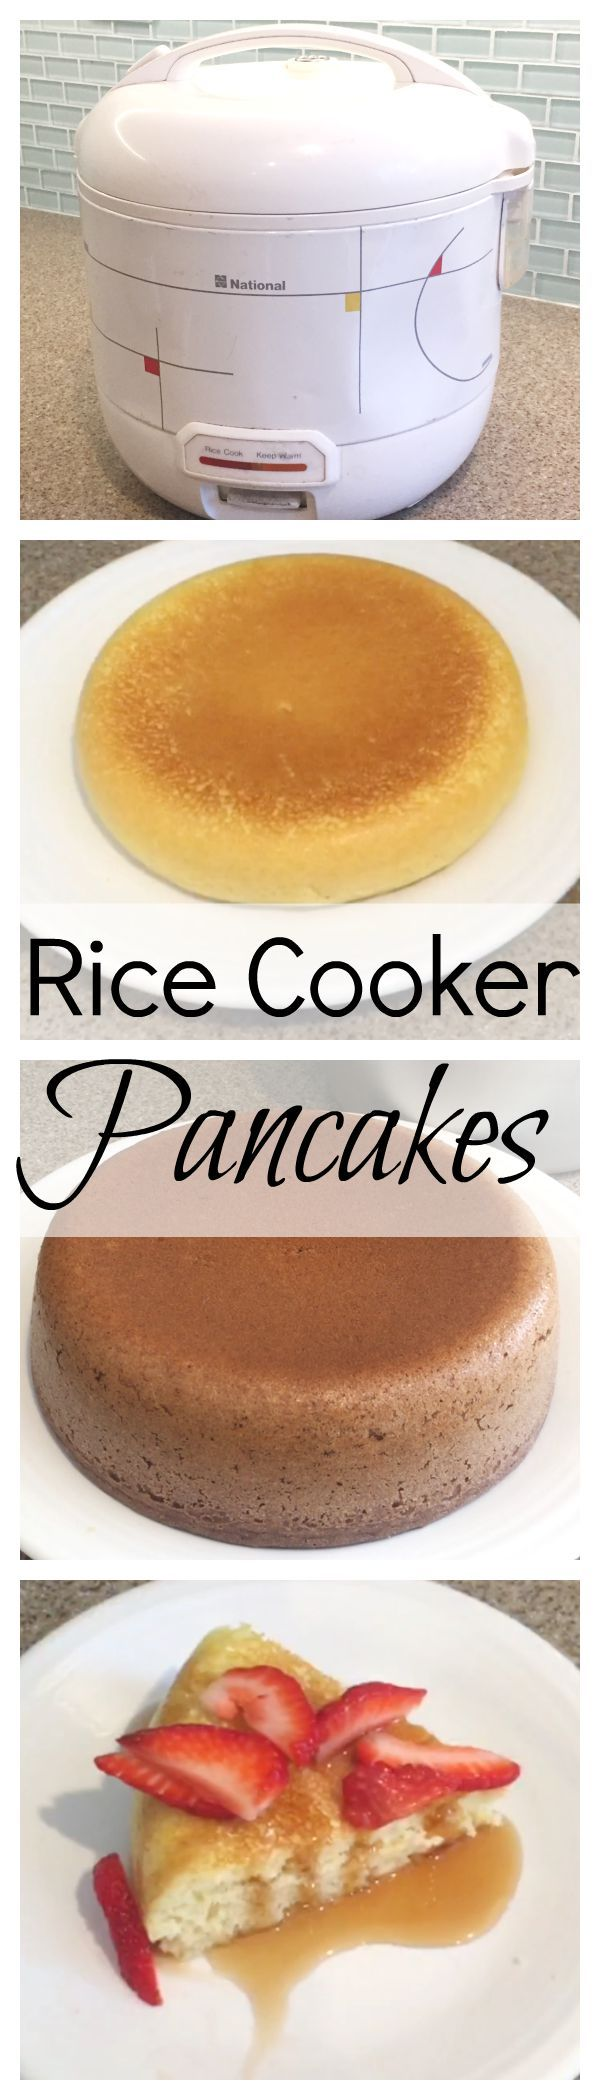 Rice Cooker Pancakes — HappySlip Not a Crockpot recipe, but it's the same concept.